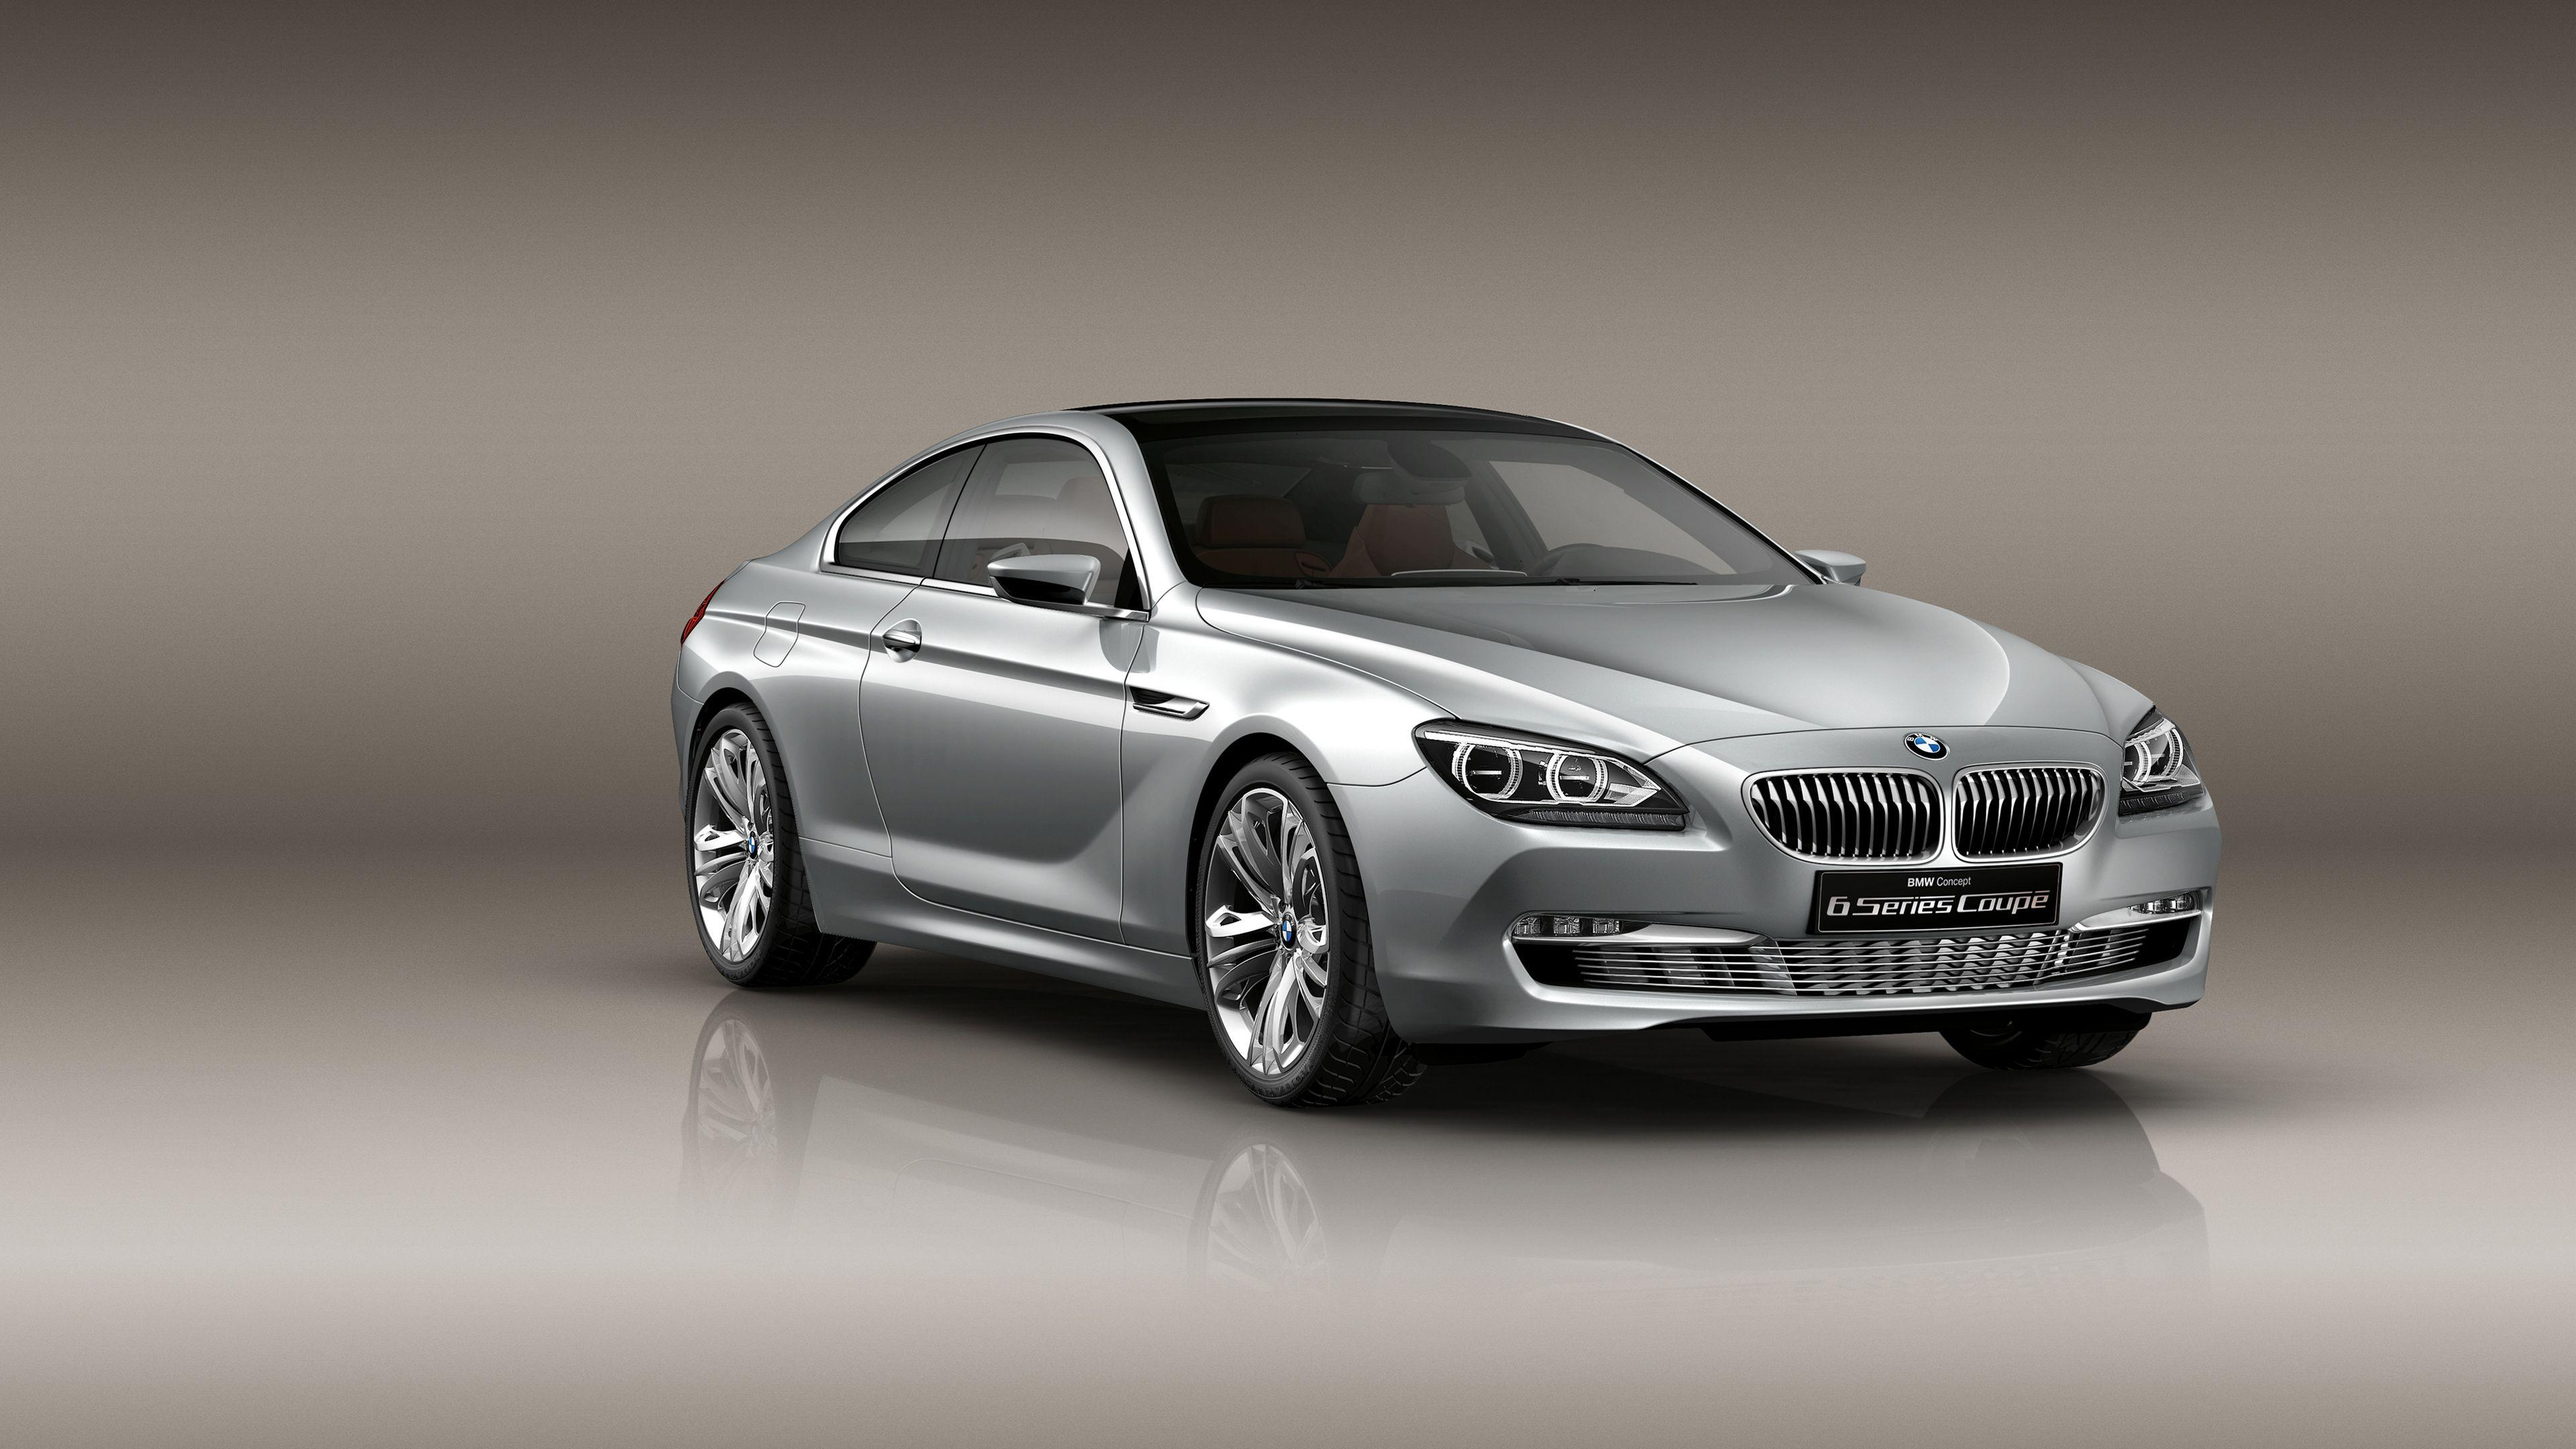 2017 BMW 6 Series Wallpapers